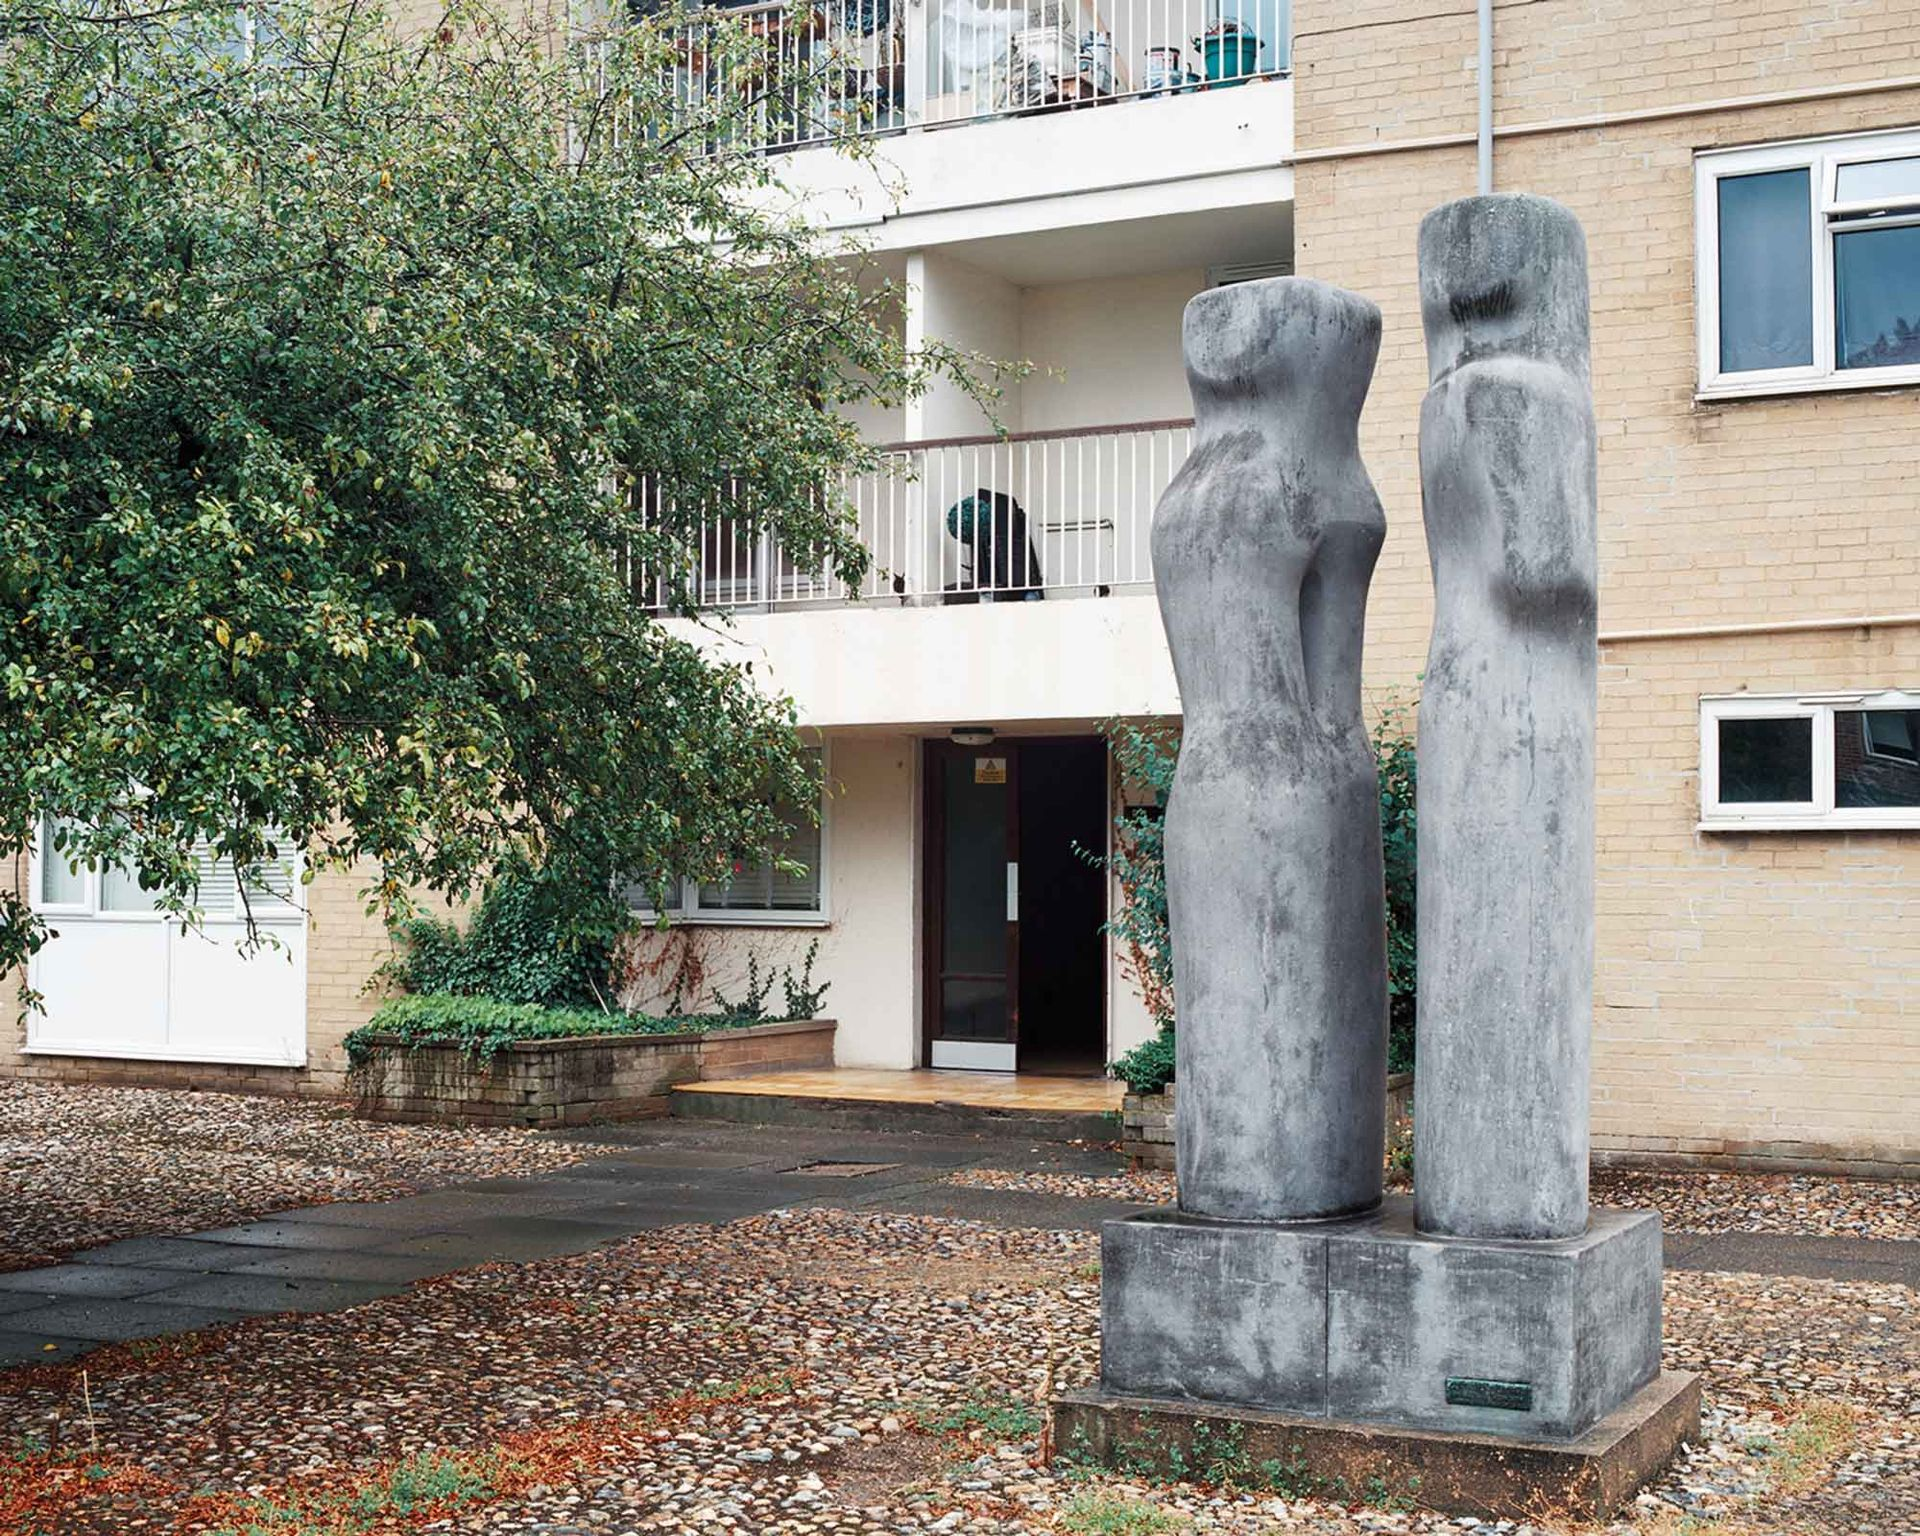 Barbara Hepworth's Contrapuntal Forms (1951) started life at the 1951 Festival of Britain on London's South Bank before taking up residence among blocks of flats in Harlow Photo: courtesy of the Harlow Art Trust